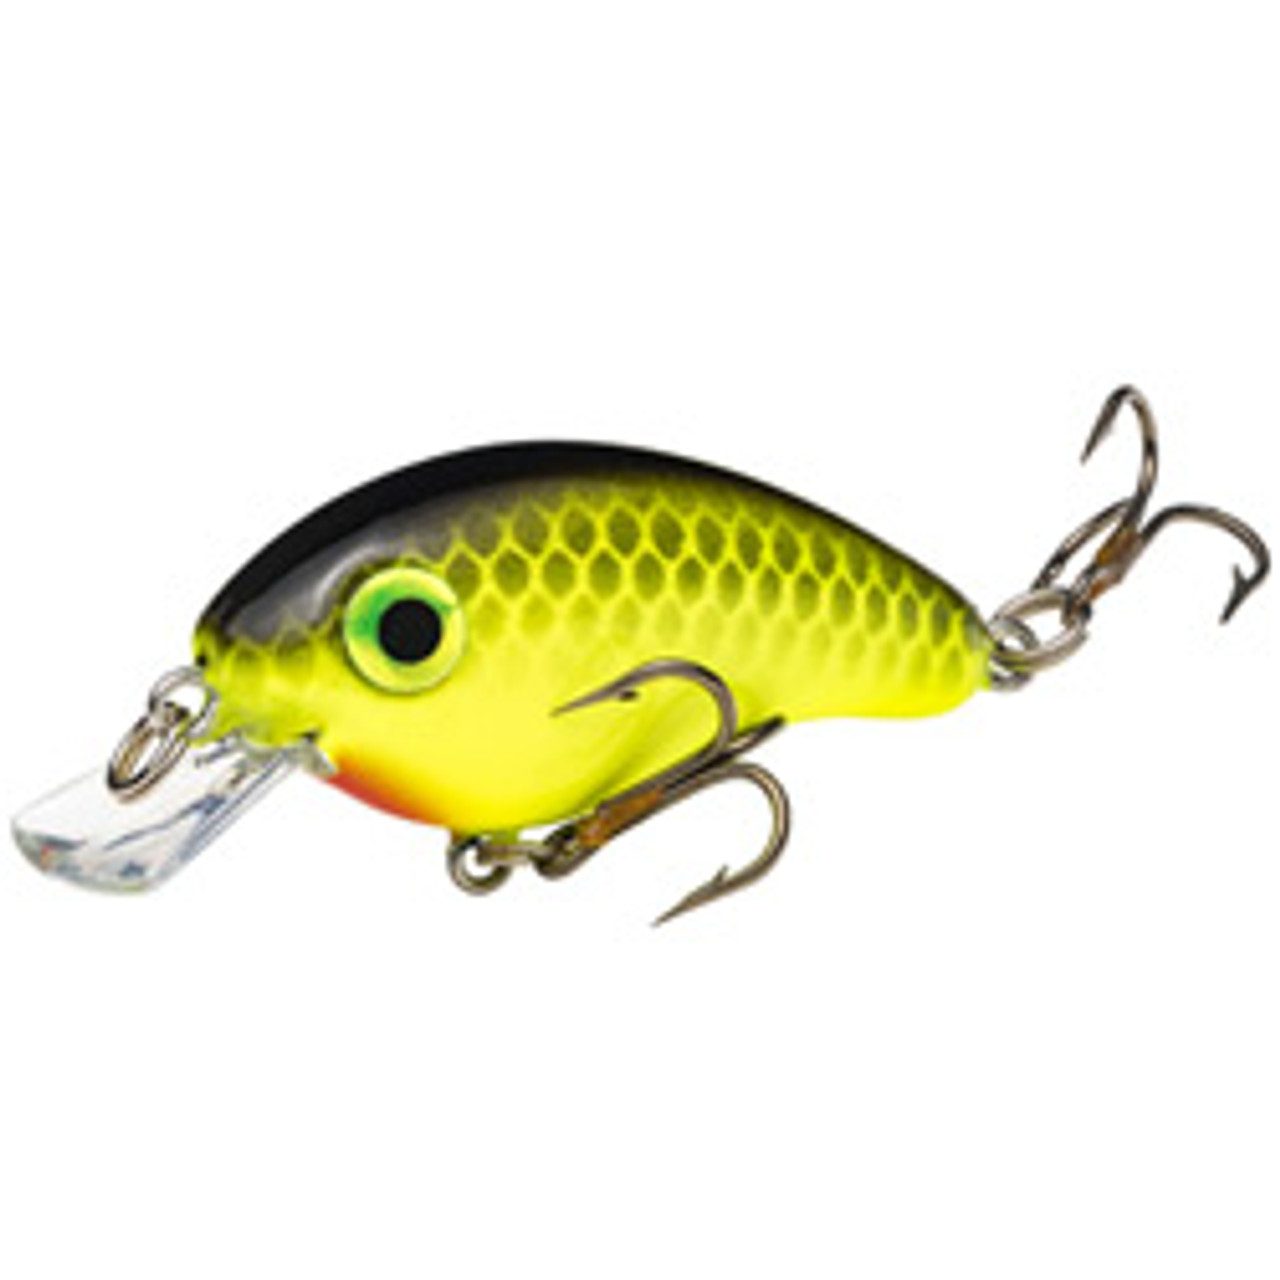 "Bitsy Minnow 1-1/4"" Mini Crankbait by Strike King"